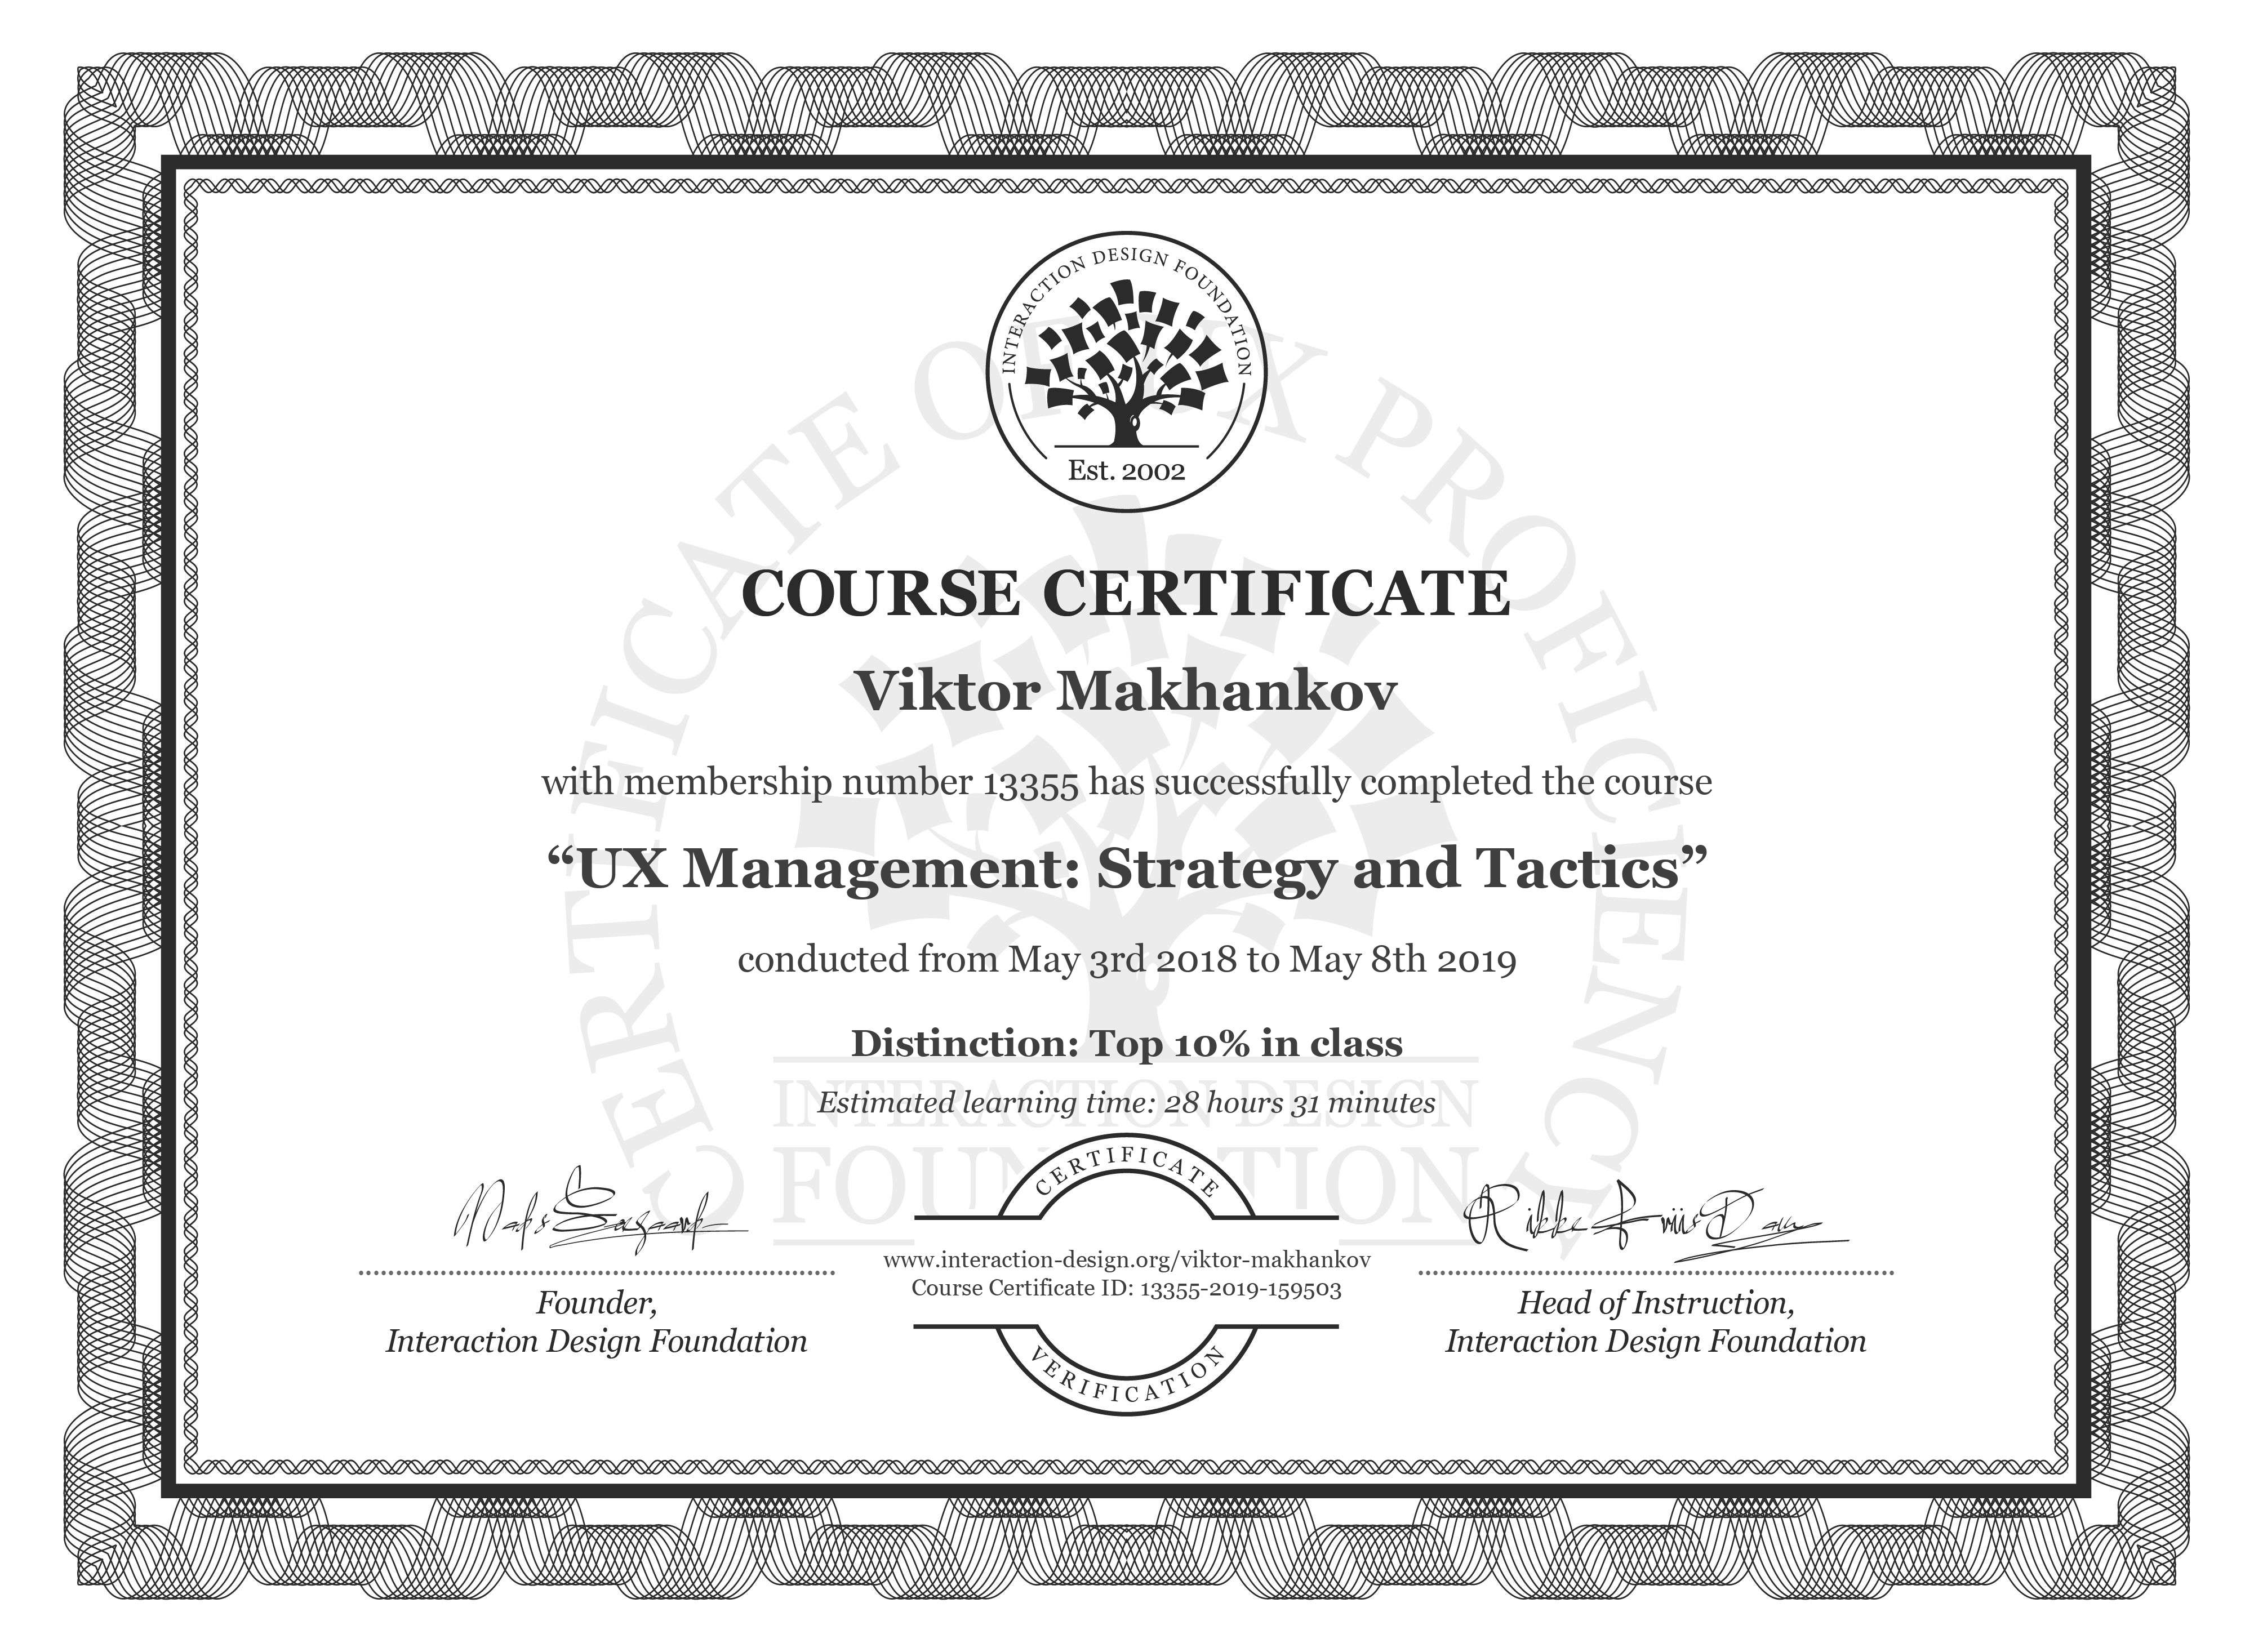 Viktor Makhankov: Course Certificate - UX Management: Strategy and Tactics